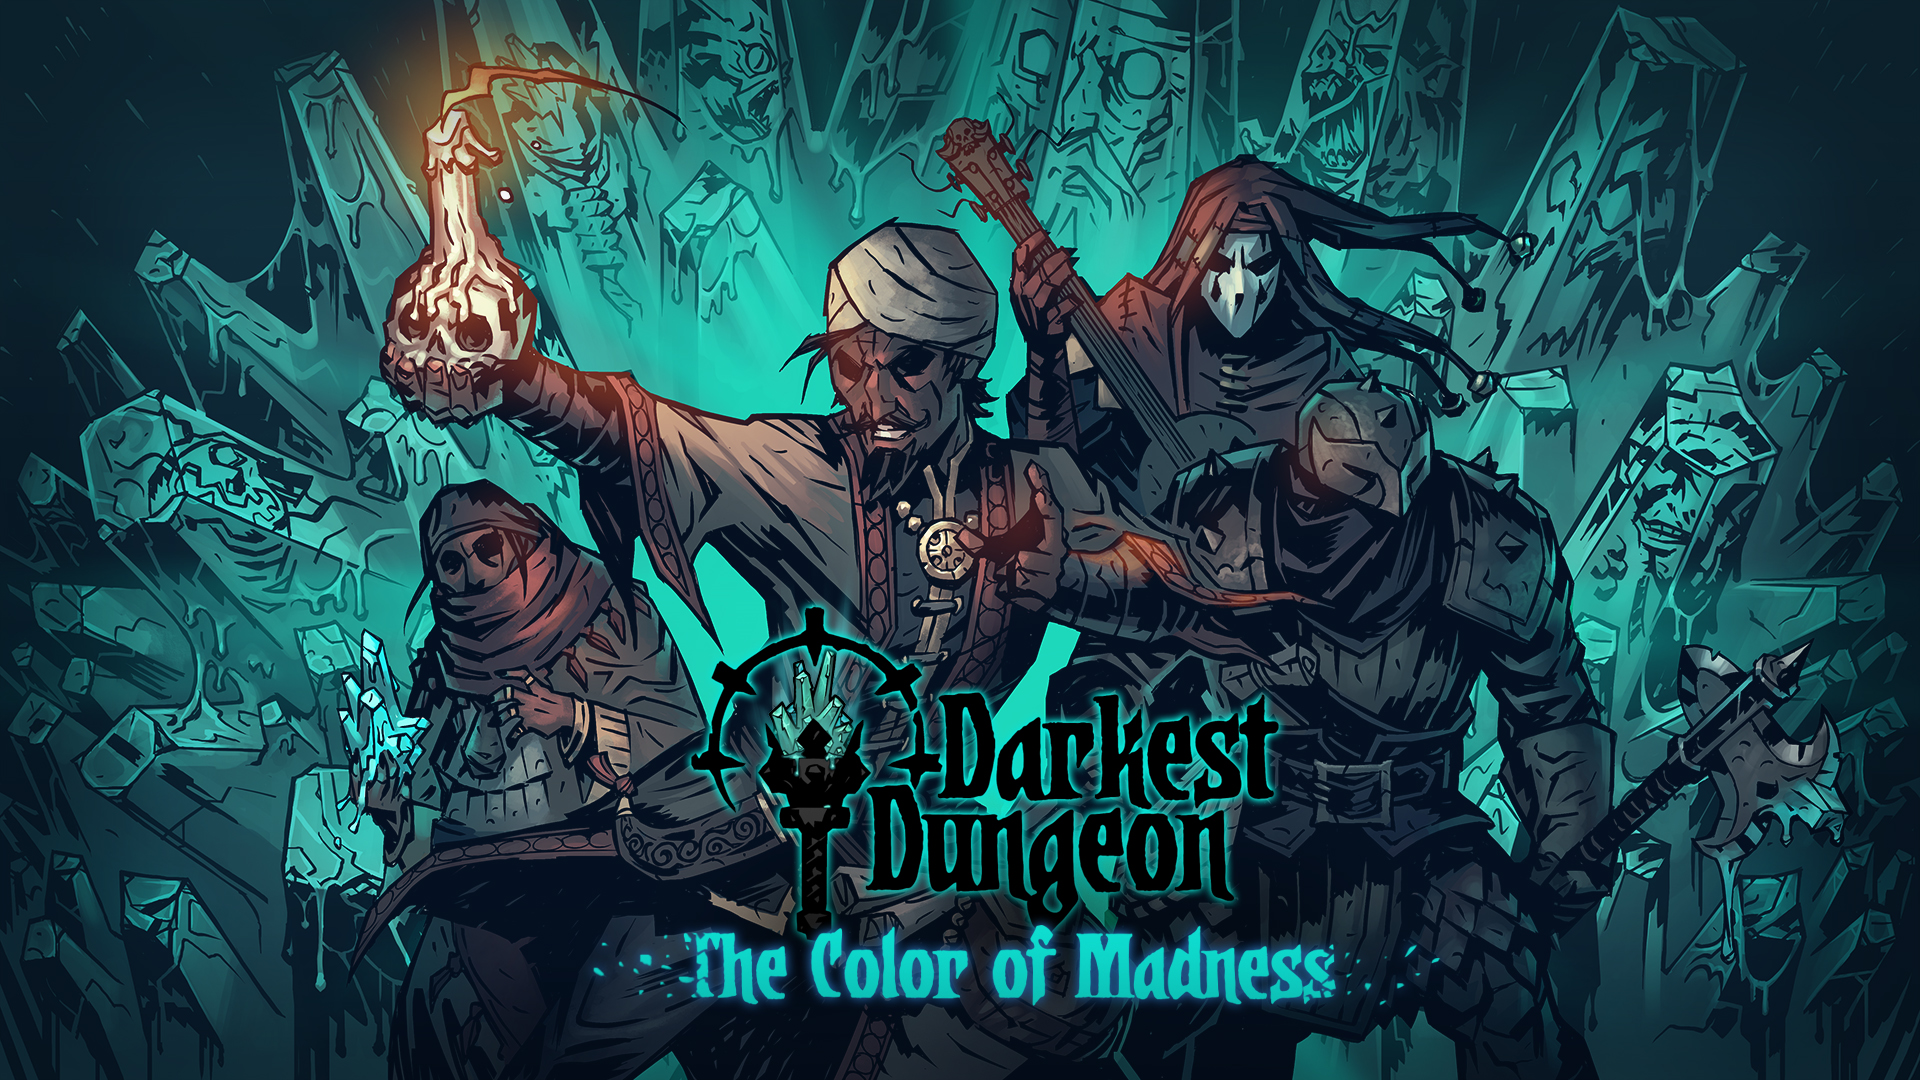 Darkest Dungeon The Color of Madness Trainer Free Download